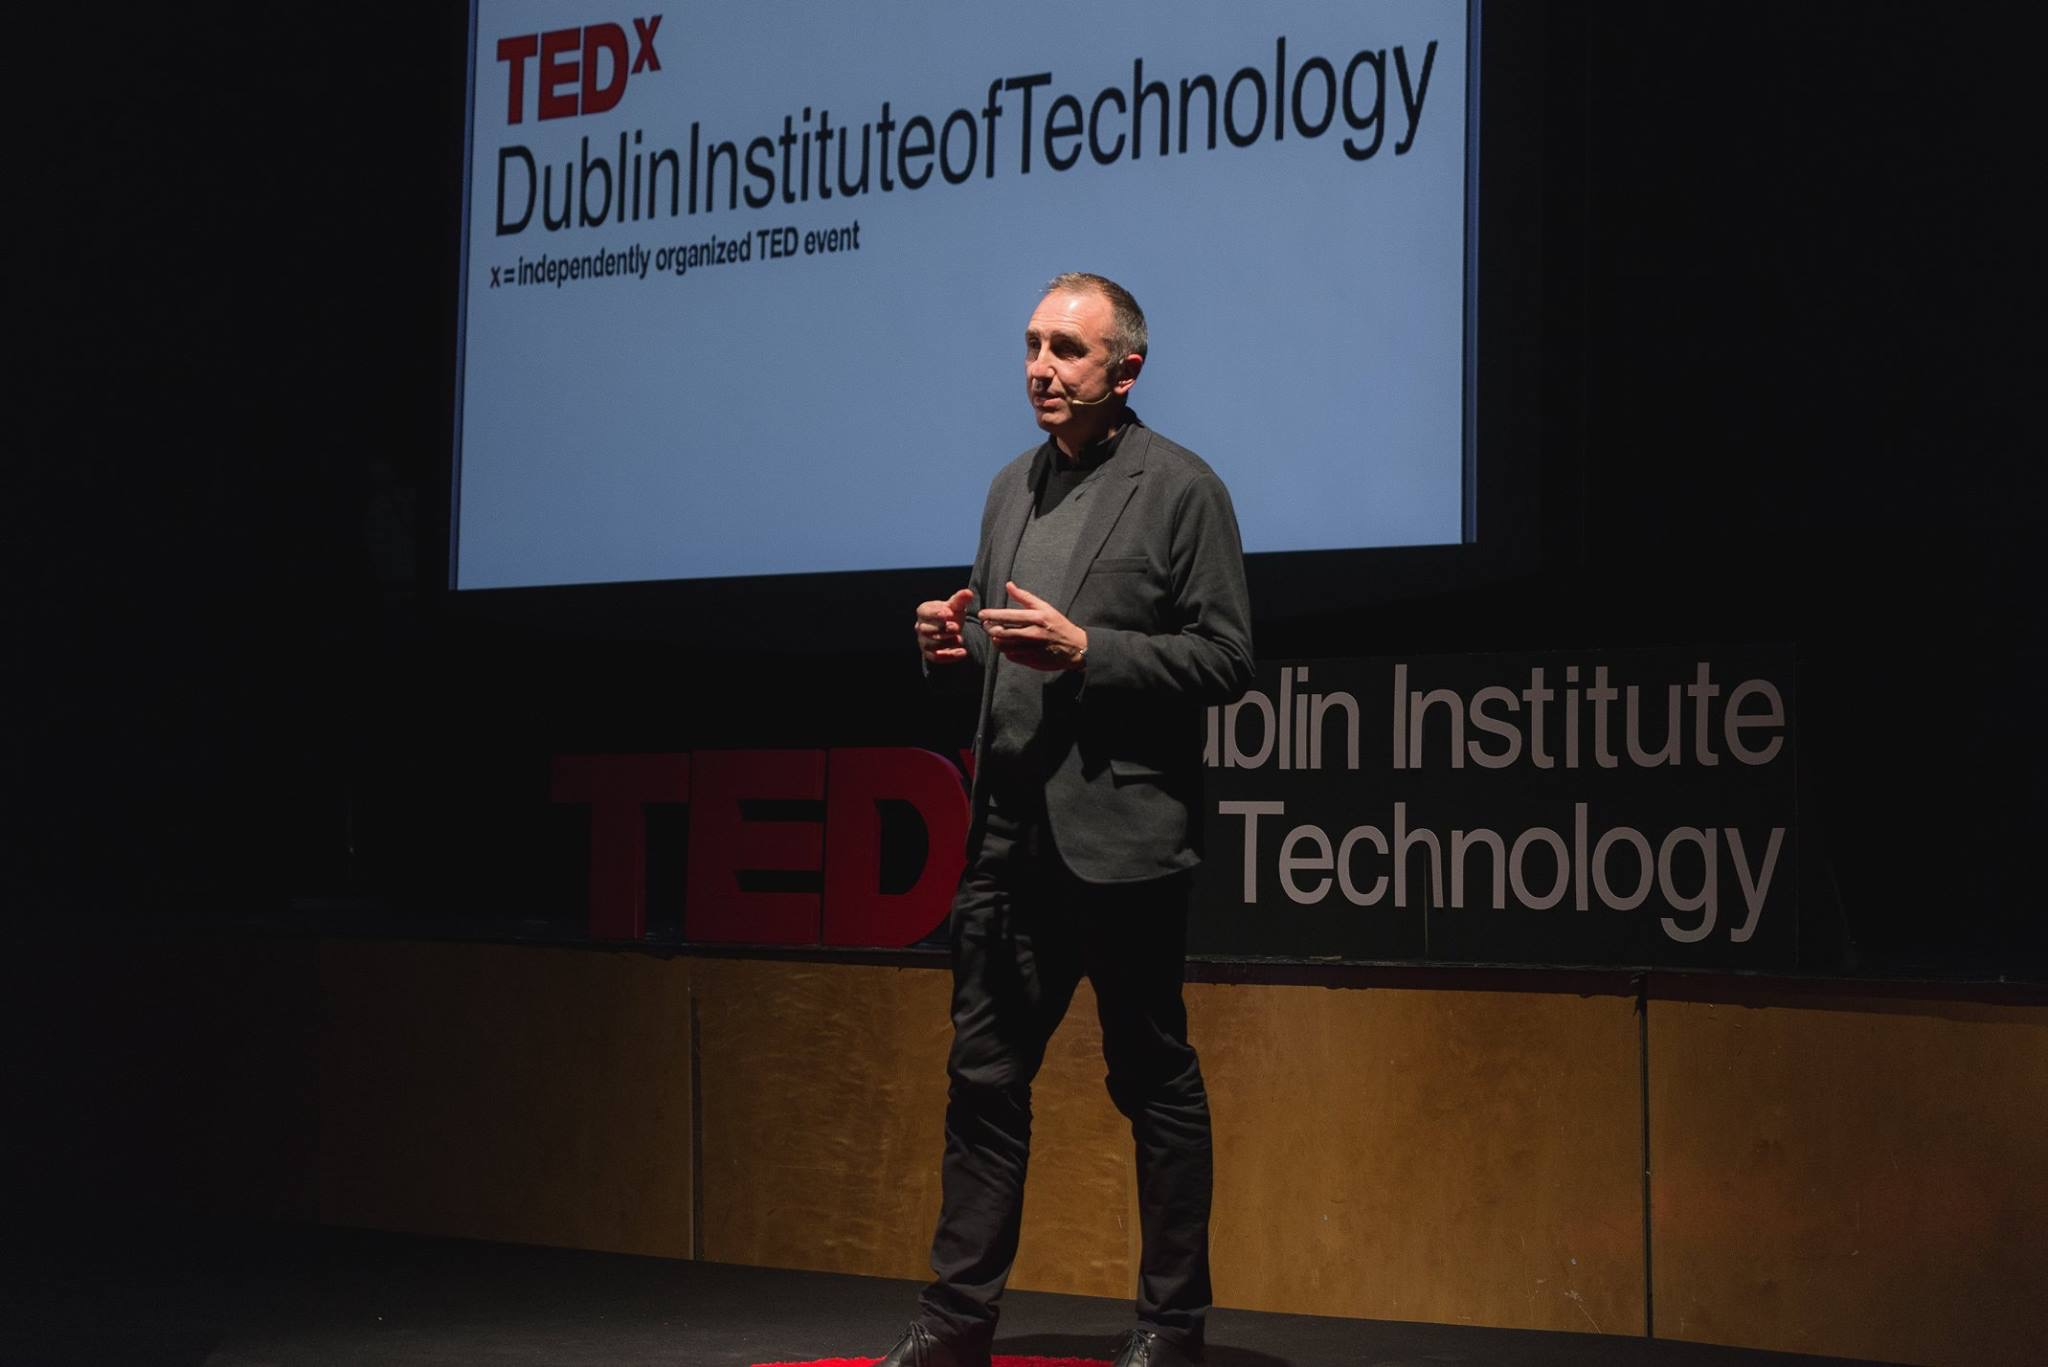 Watch Tony's TEDx Talk on YouTube